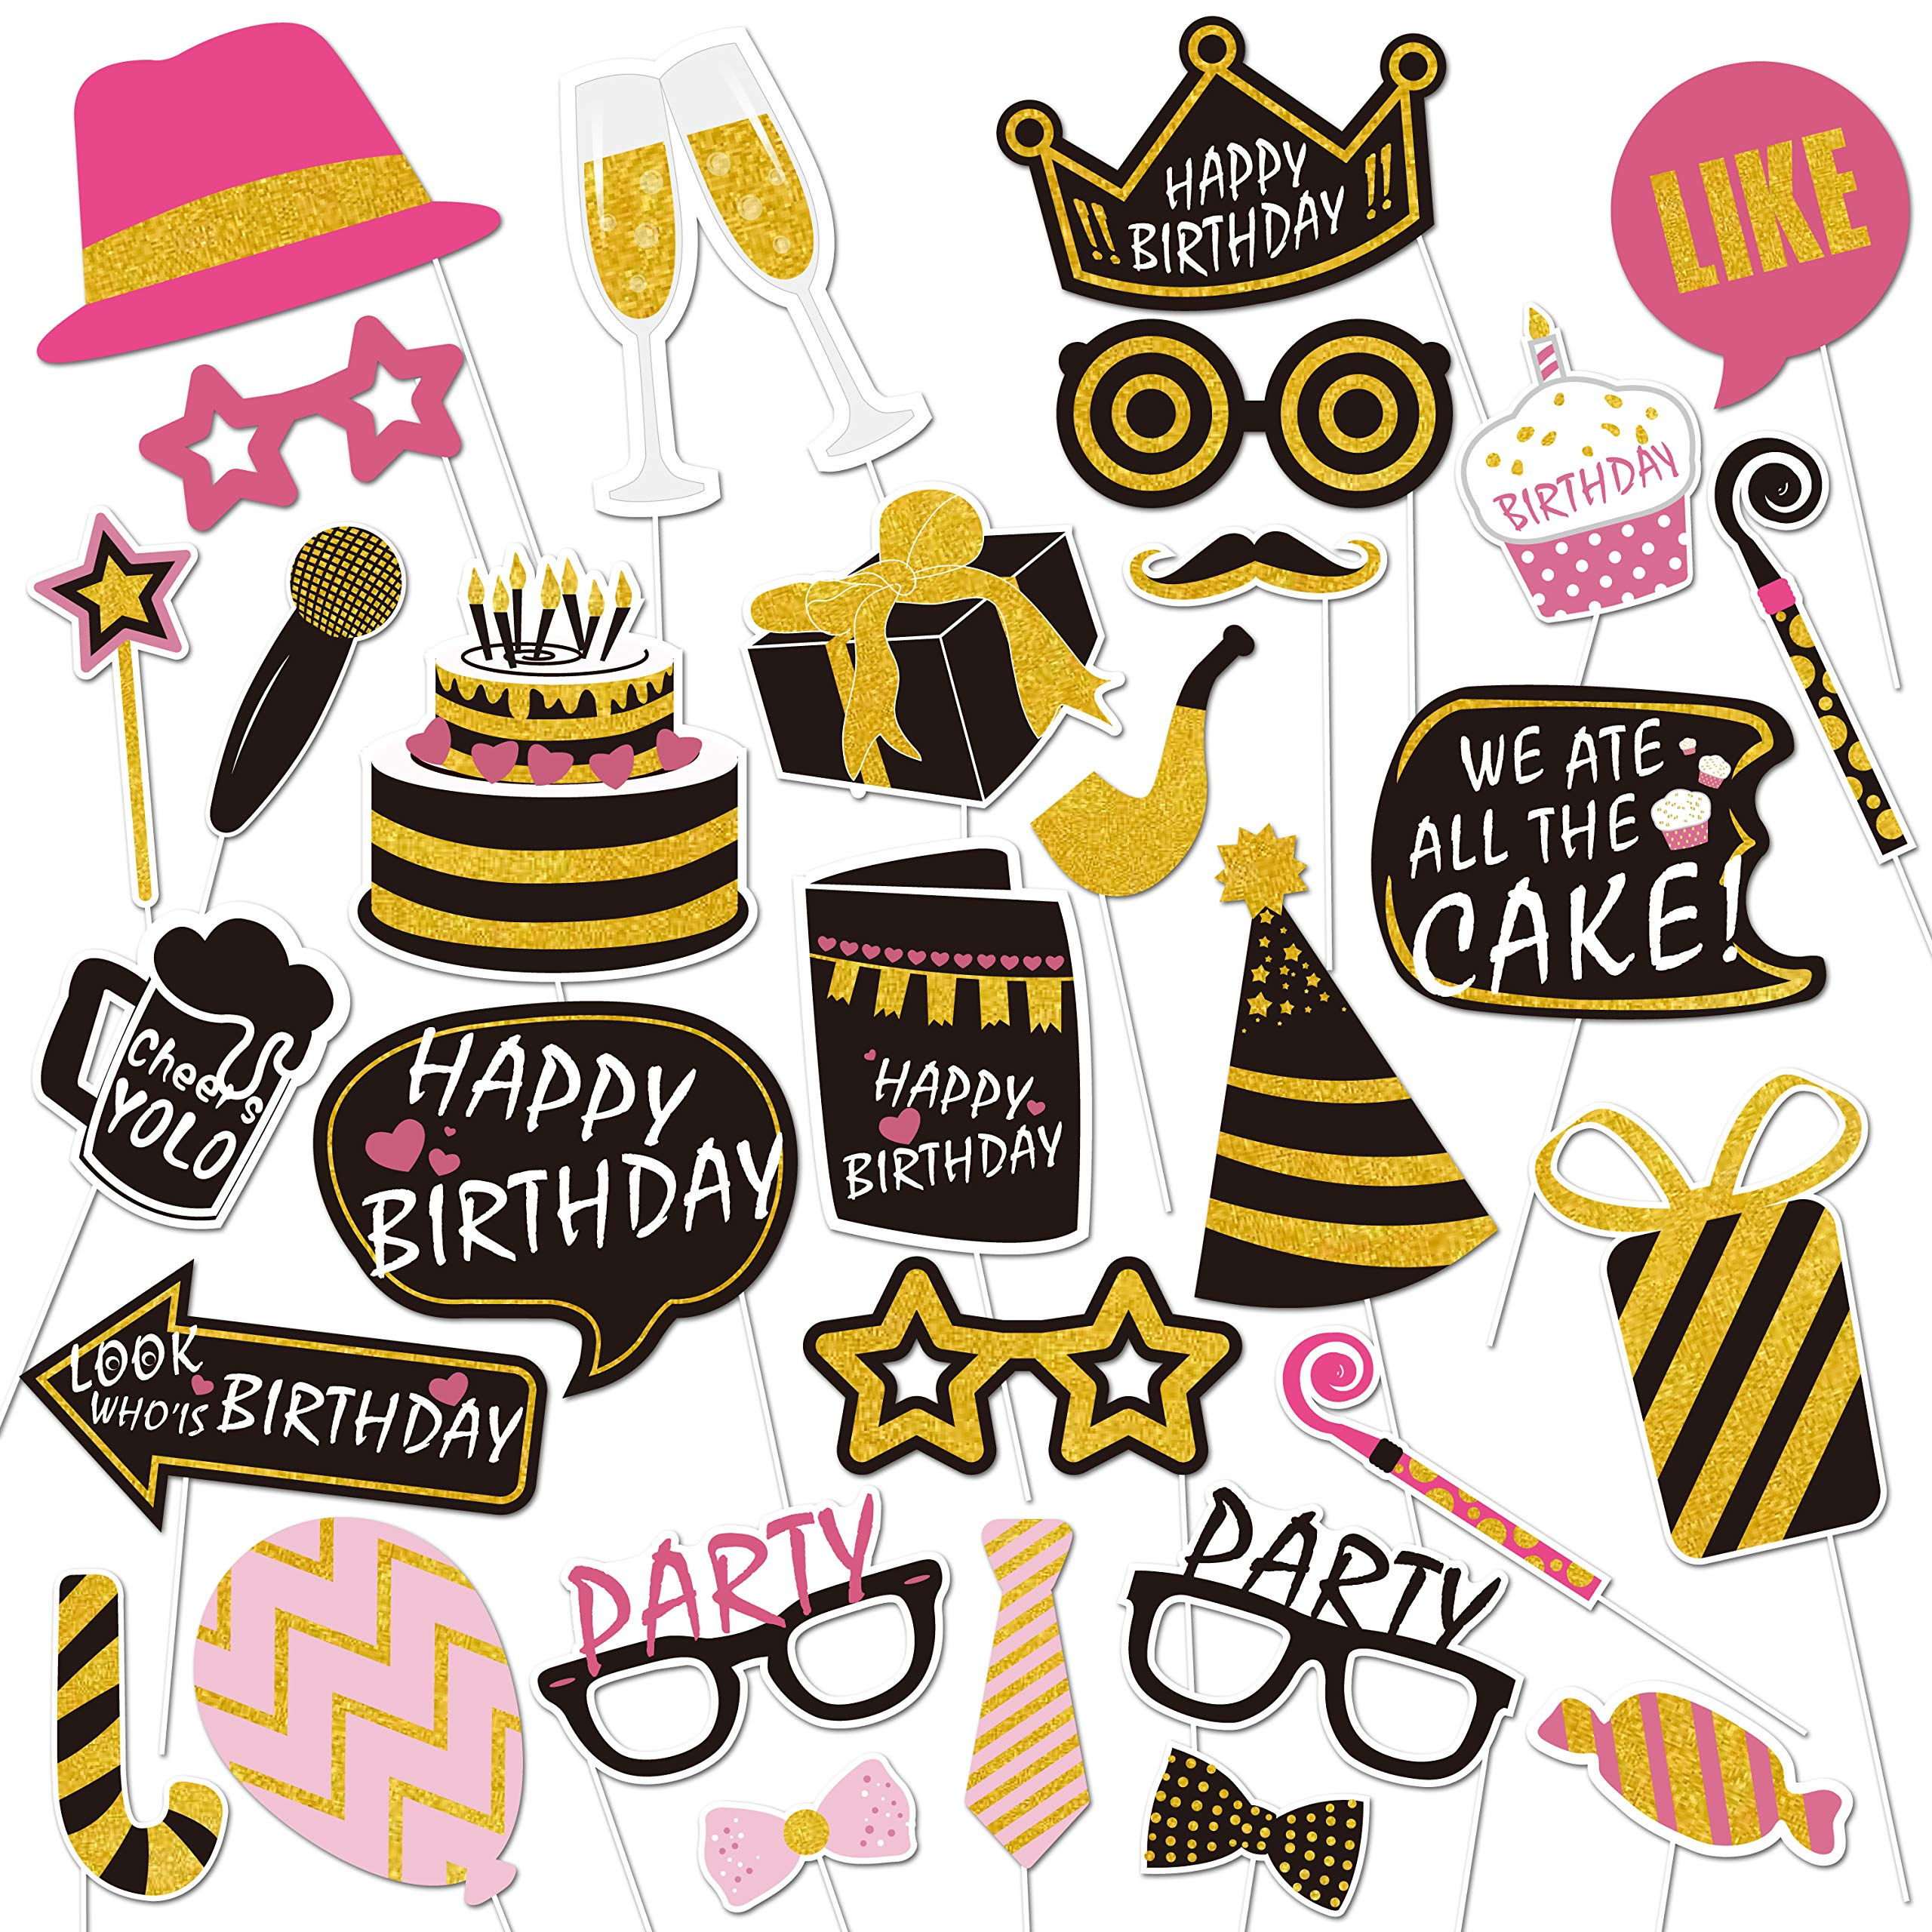 30th Birthday Photo Booth Props(51pcs) –Photography Black And Gold Pink Décor 40th Birthday Party Supplies for Men and Women by Lucky Party